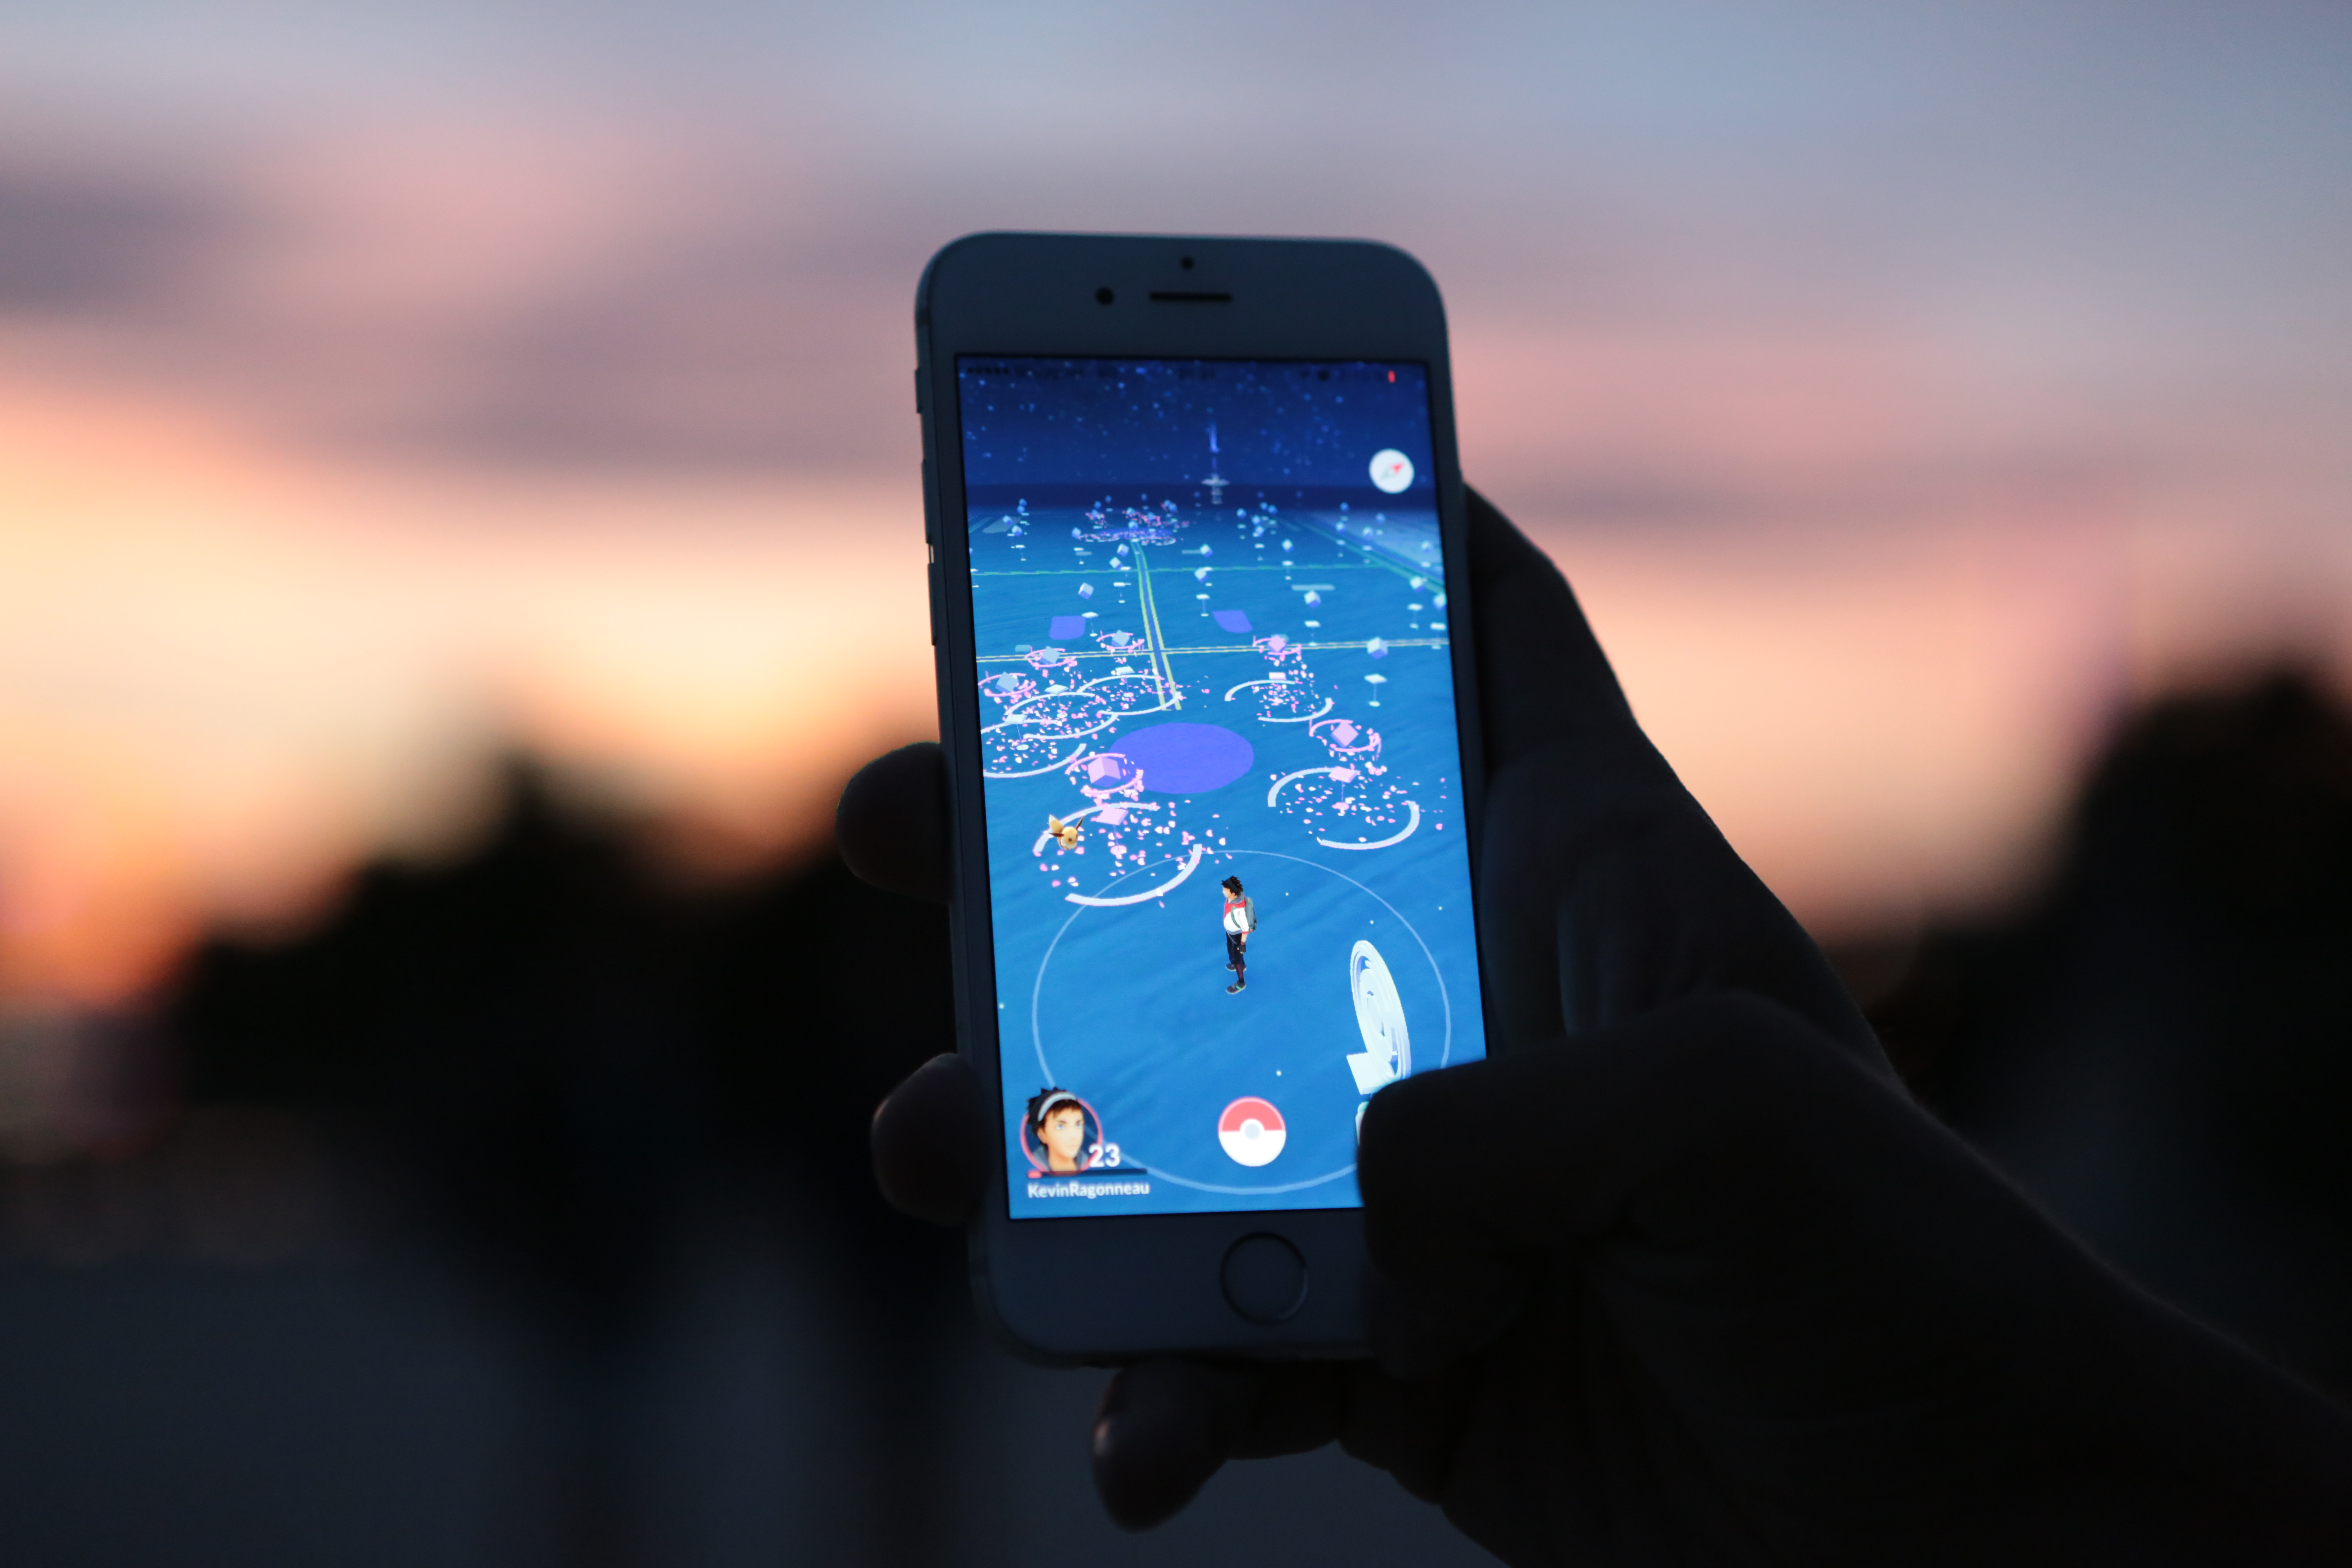 A man plays Nintendo Co.'s Pokemon Go augmented-reality game on August 17, 2016 in Paris, France.